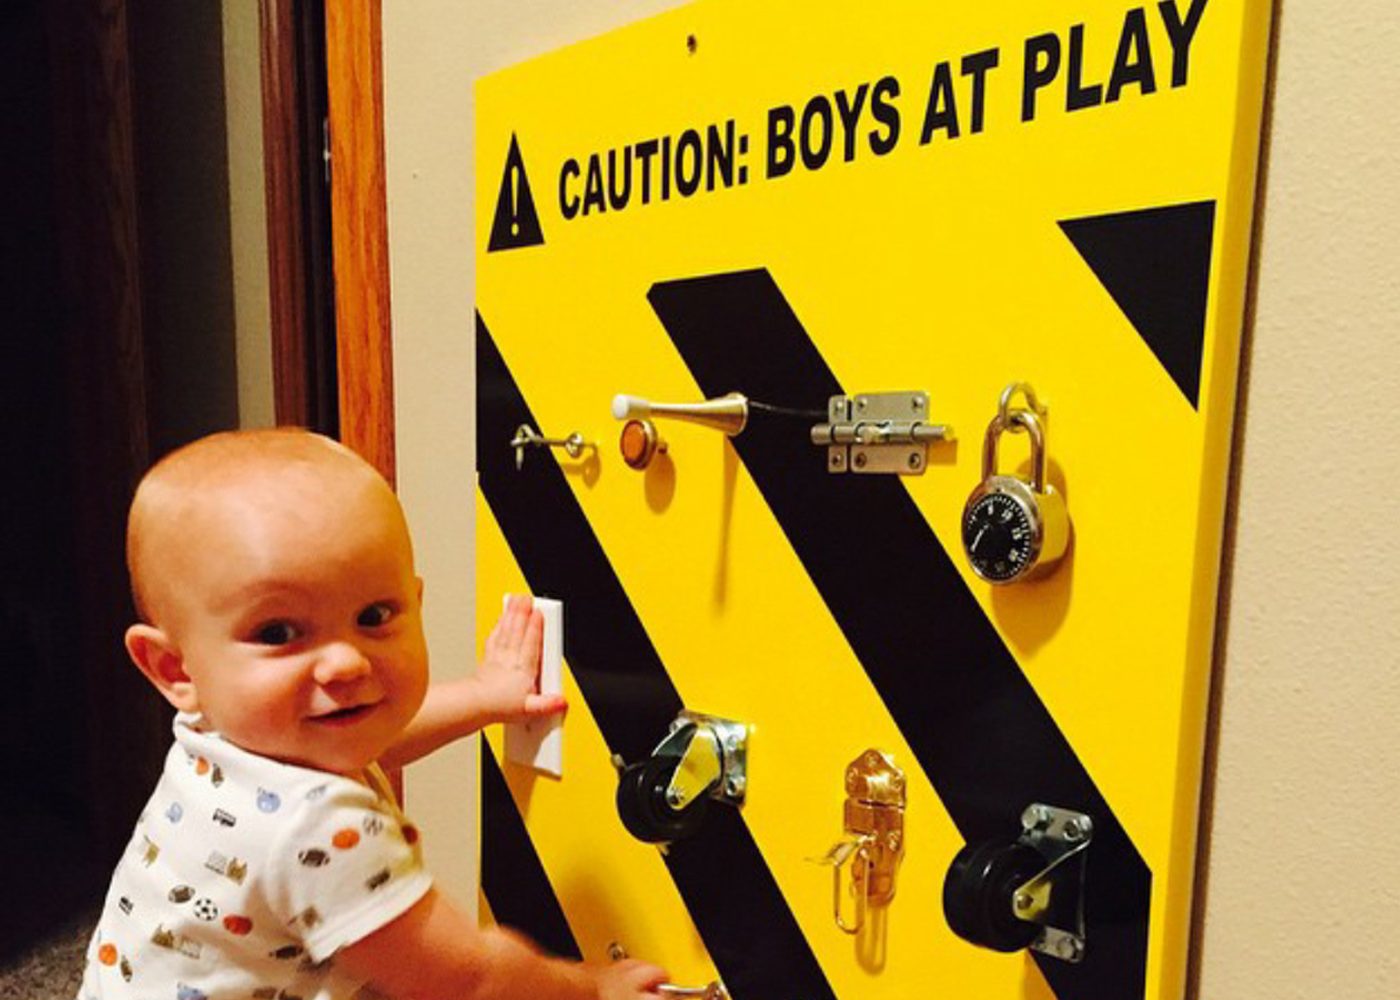 caution-boys-at-play-vinyl-decal-on-board.jpg